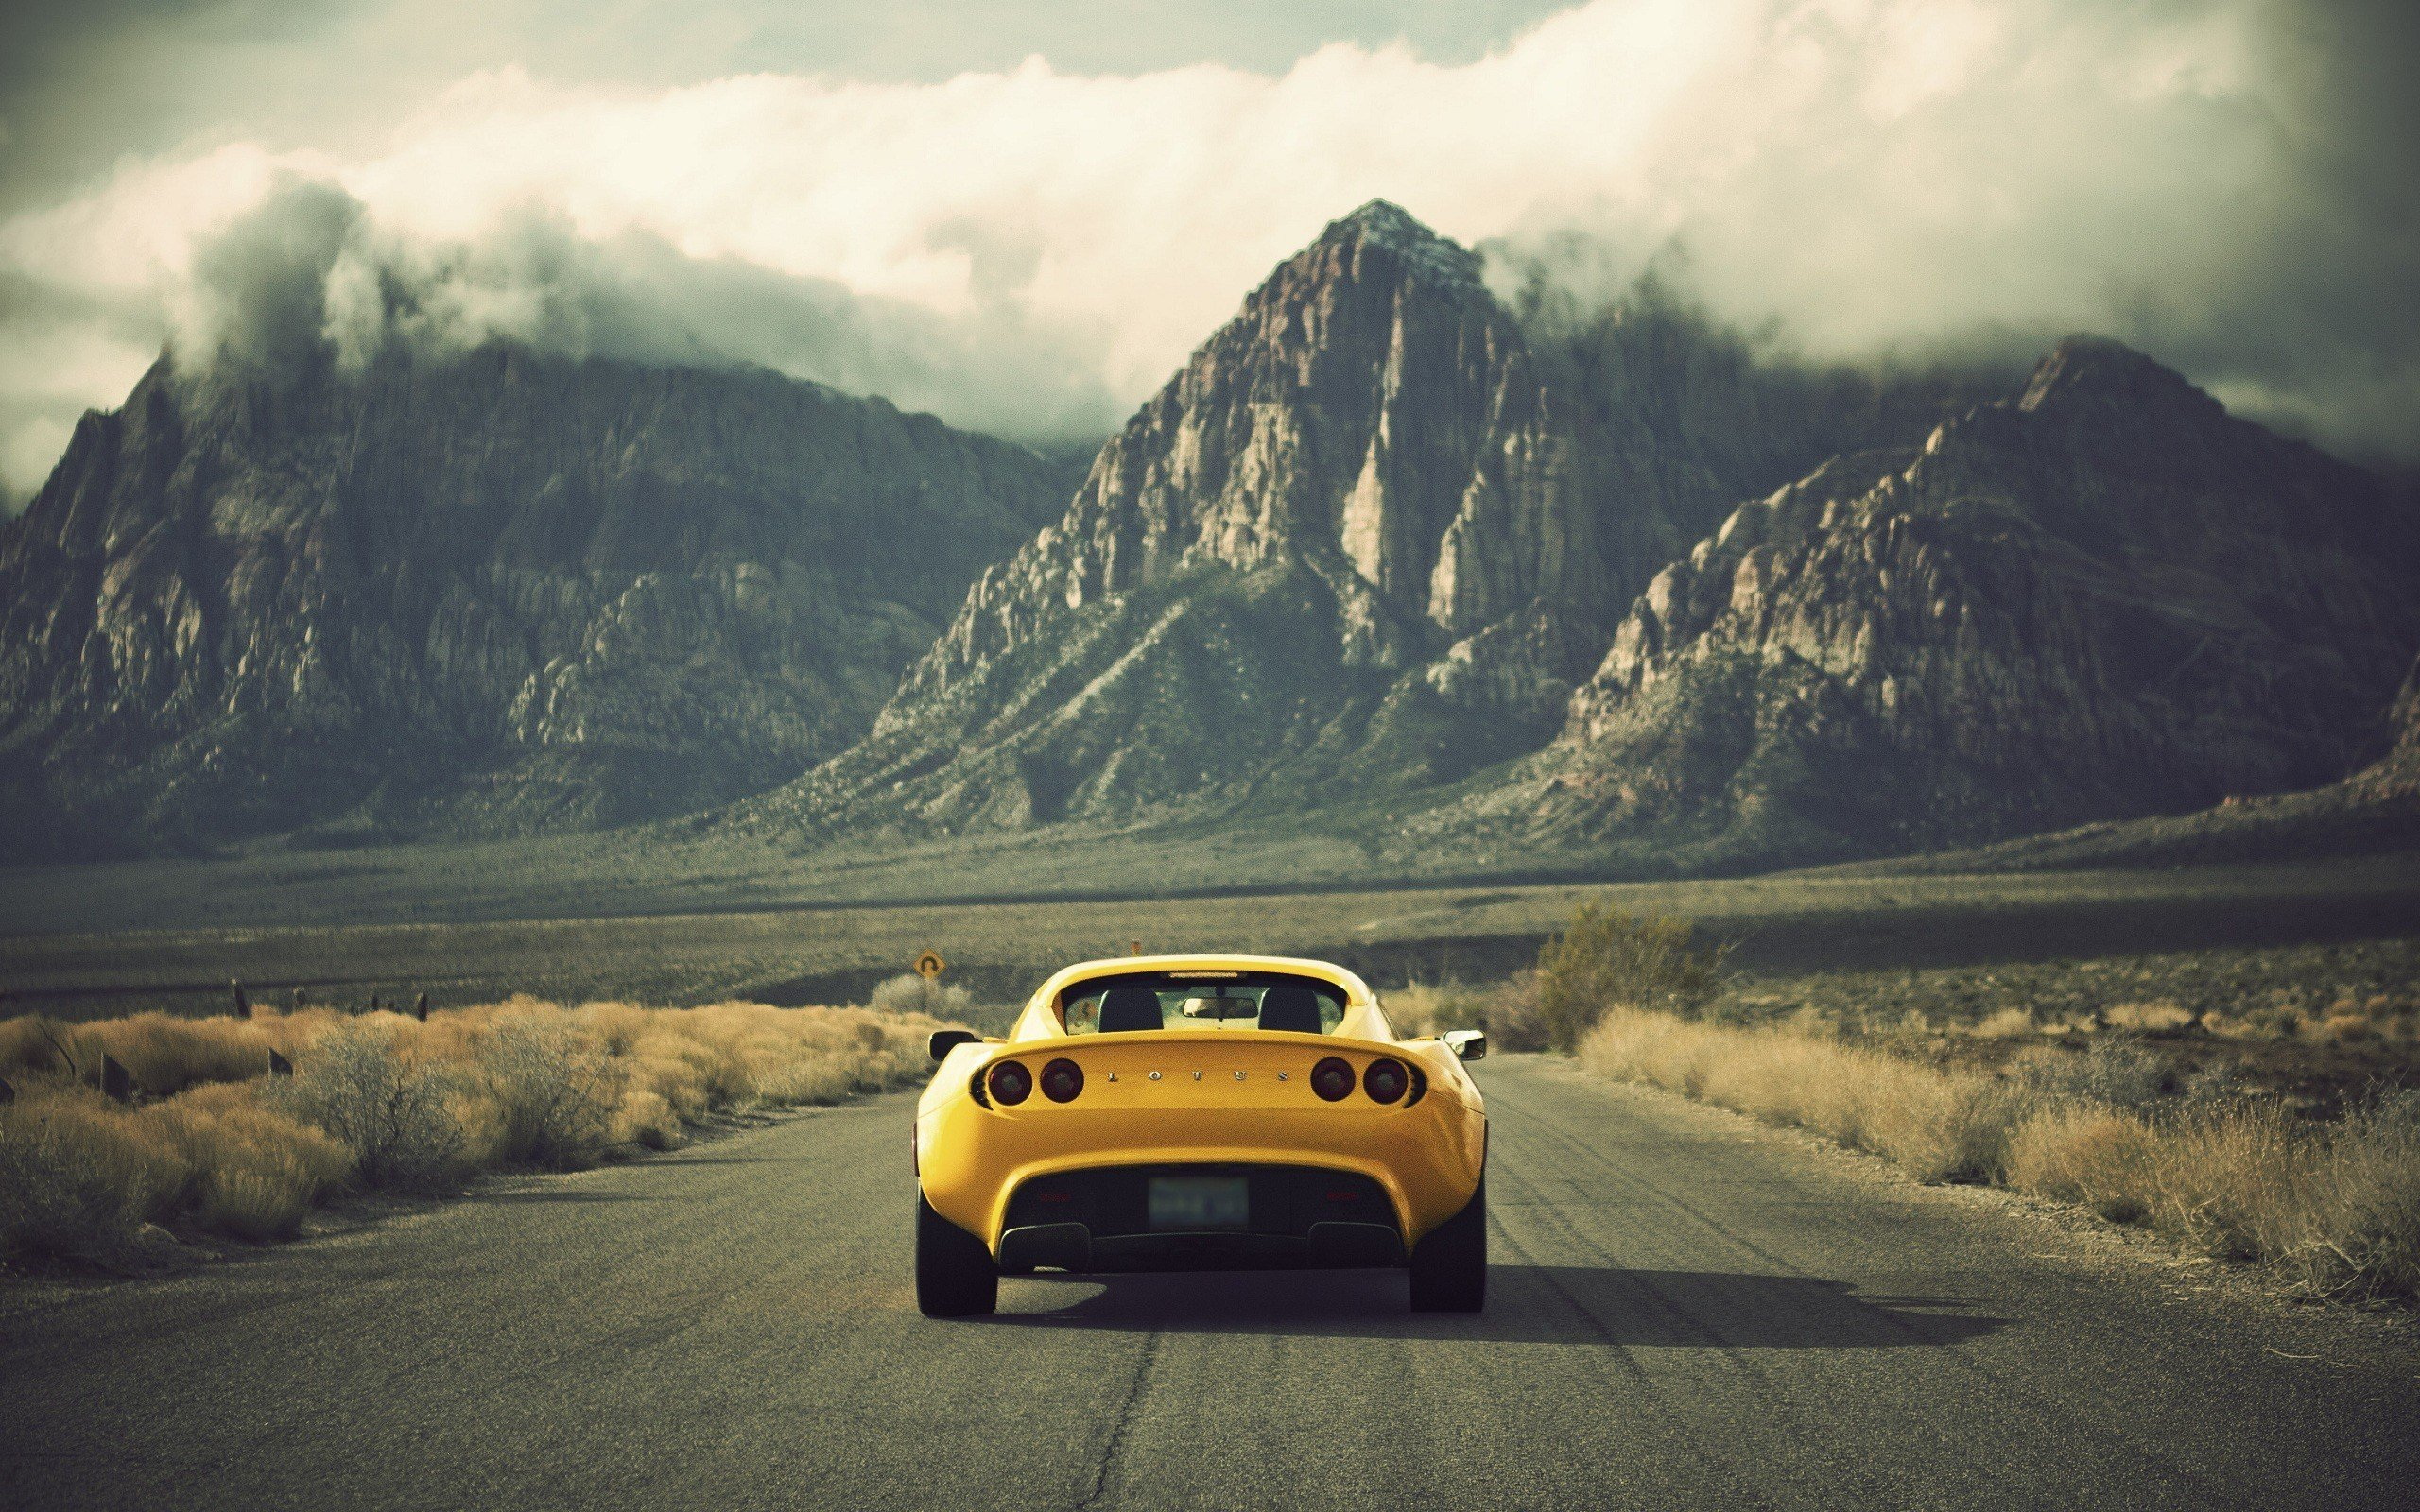 Latest 14 Lotus Elise Hd Wallpapers Backgrounds Wallpaper Abyss Free Download